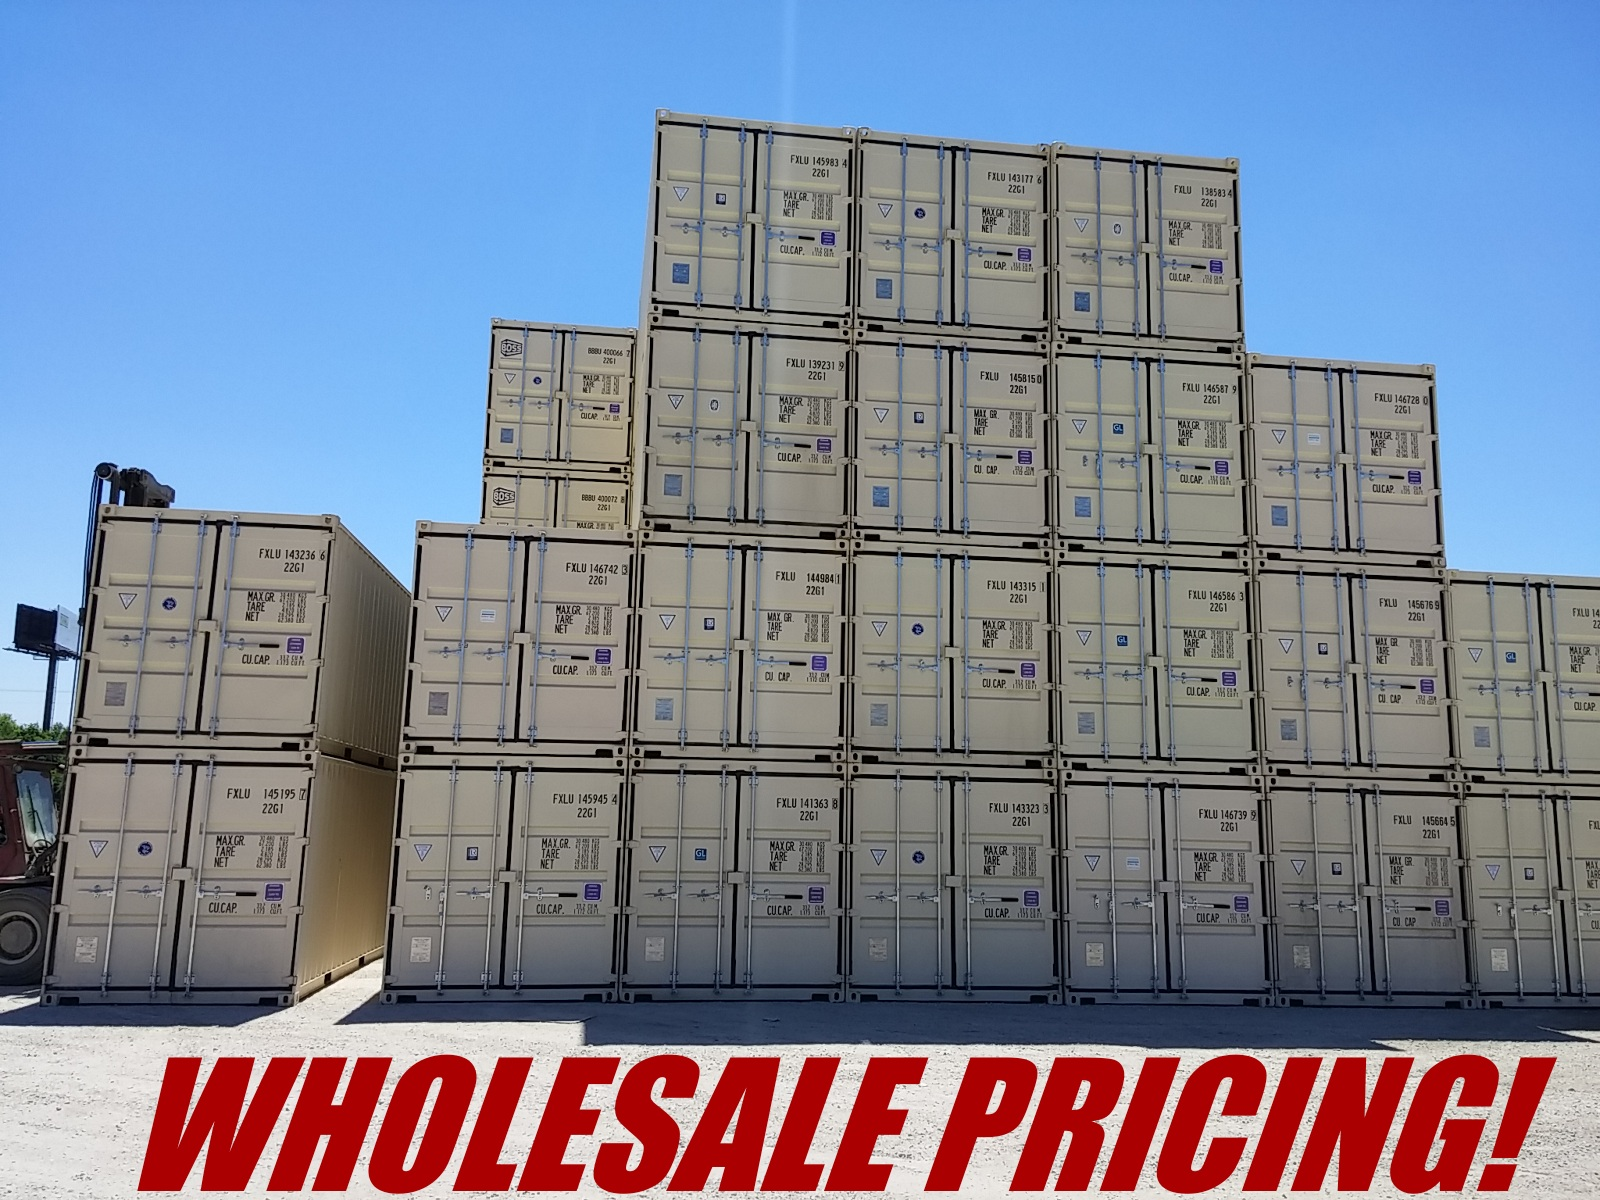 Wholesale pricing stack